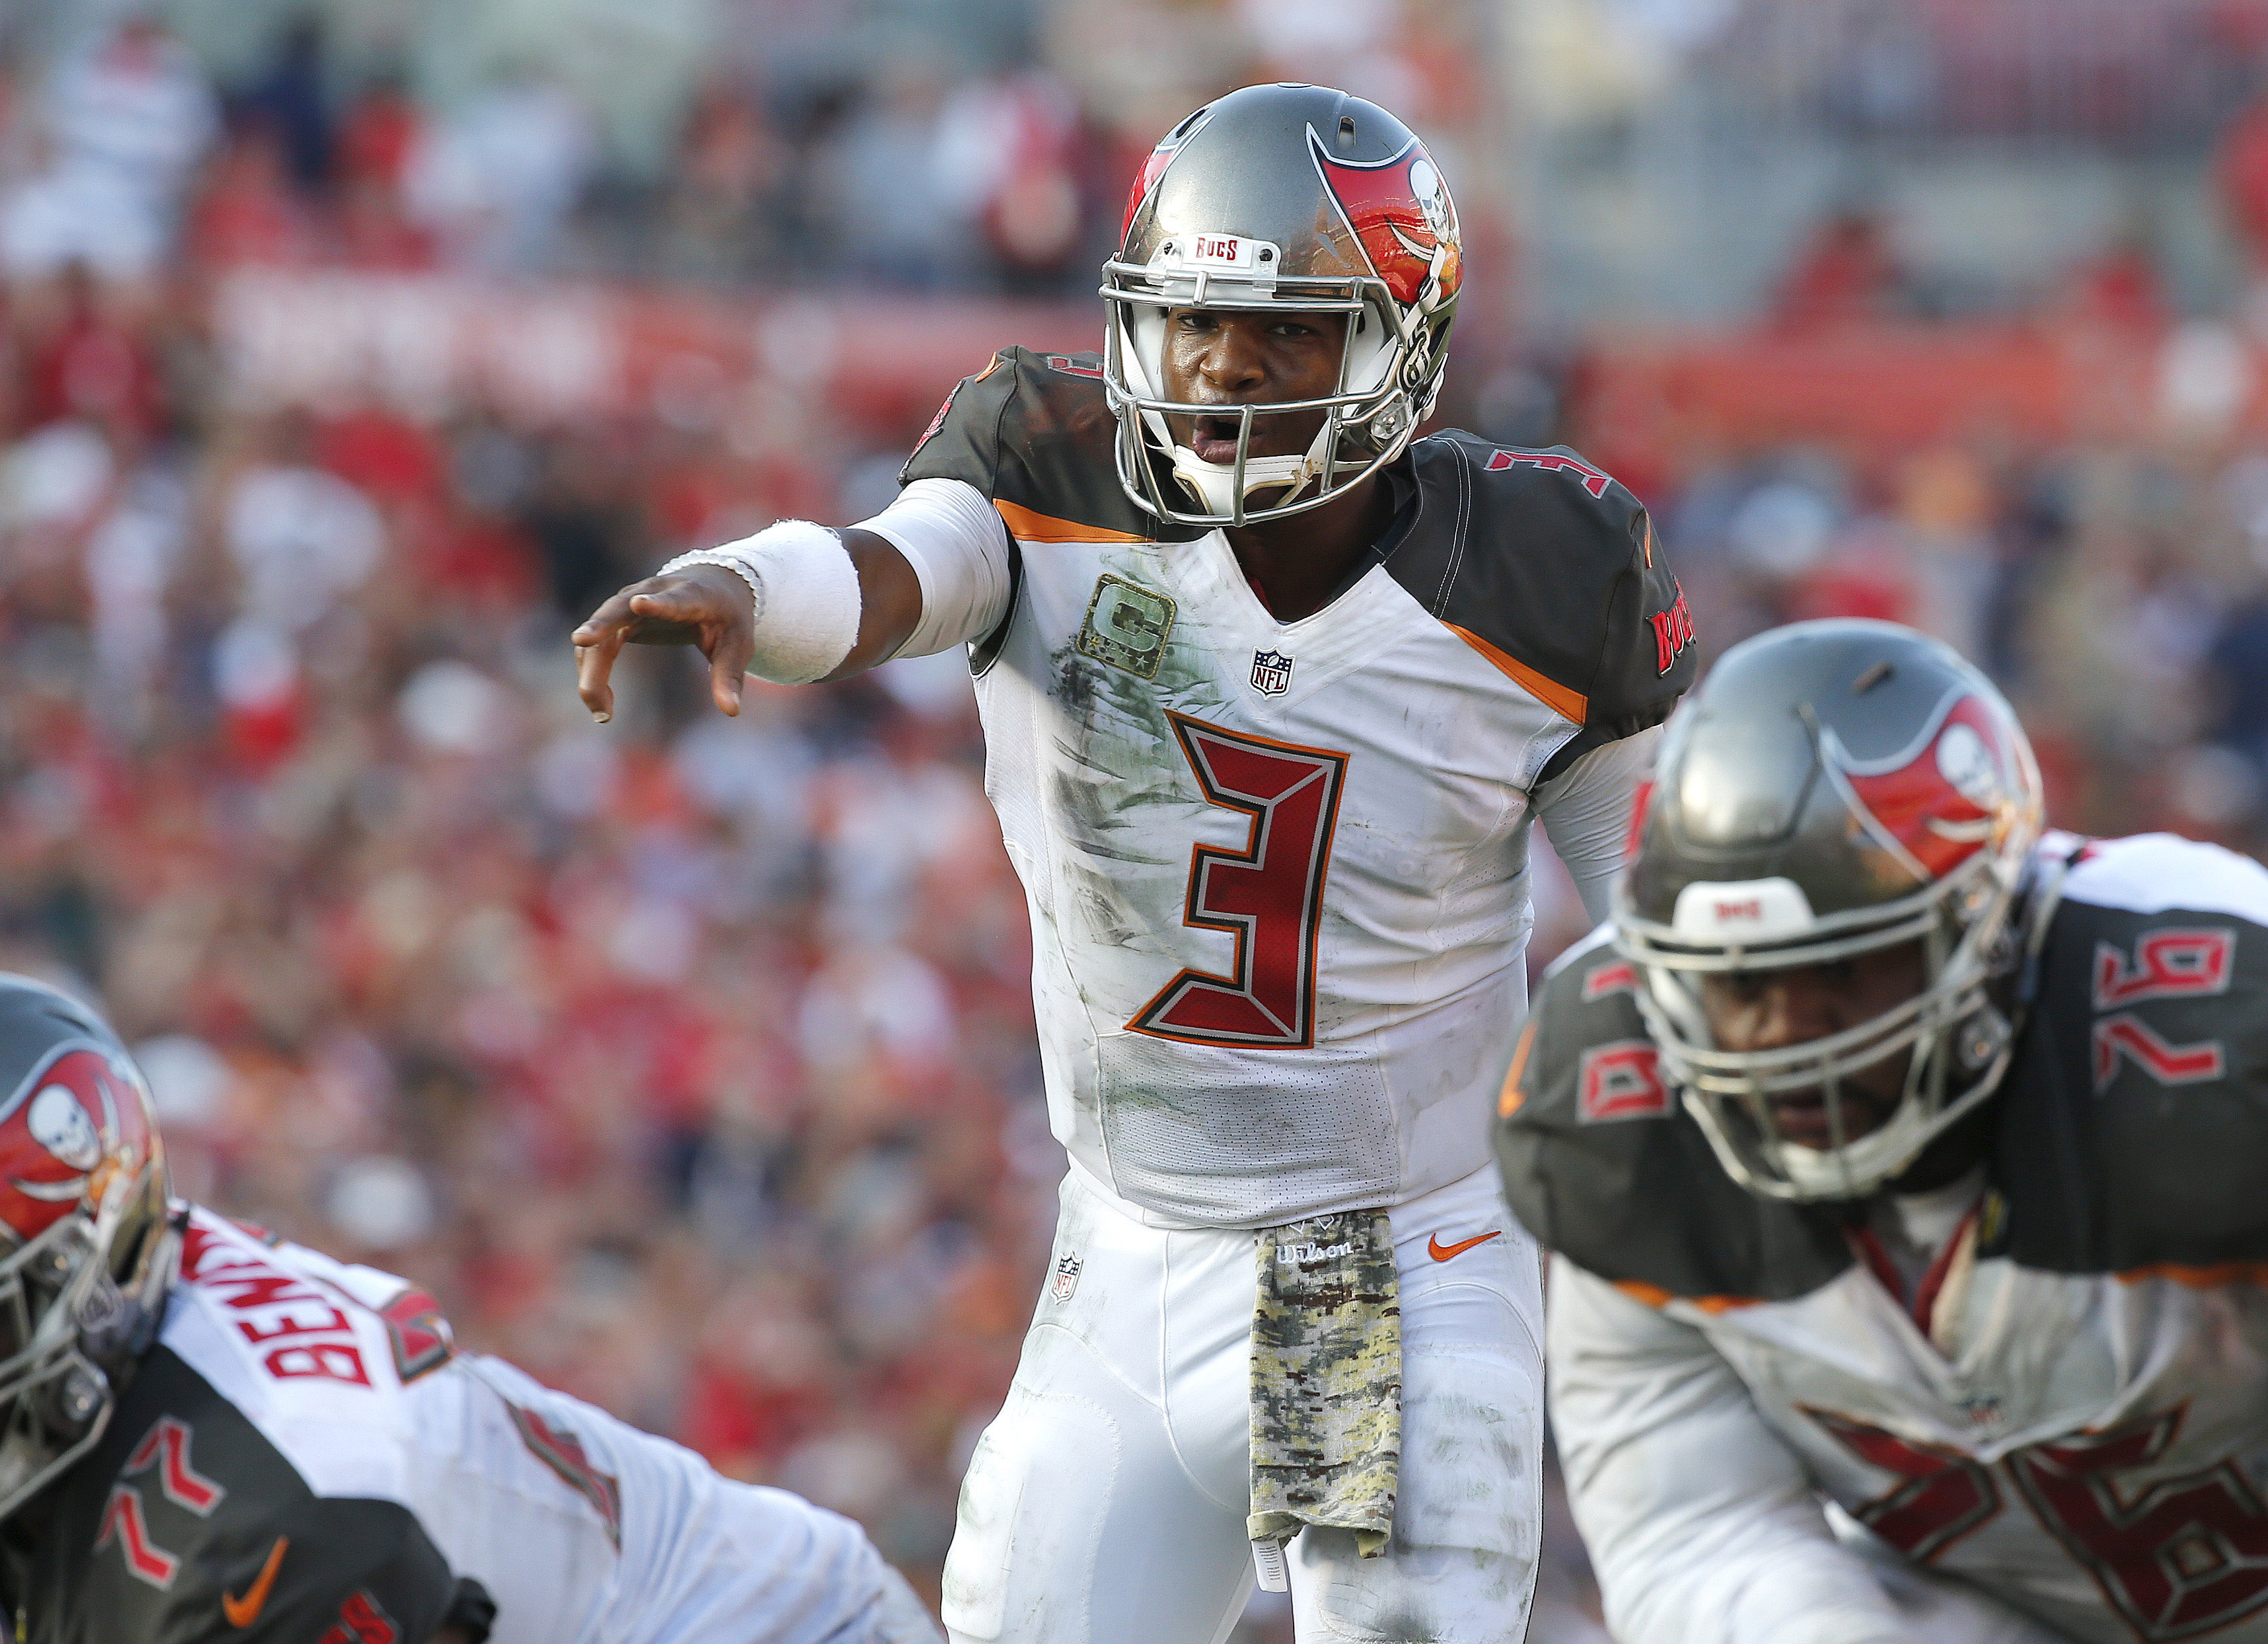 Nov 13, 2016; Tampa, FL, USA; Tampa Bay Buccaneers quarterback Jameis Winston (3) points against the Chicago Bears during the second half at Raymond James Stadium. Tampa Bay Buccaneers defeated the Chicago Bears 36-10. Mandatory Credit: Kim Klement-USA TODAY Sports